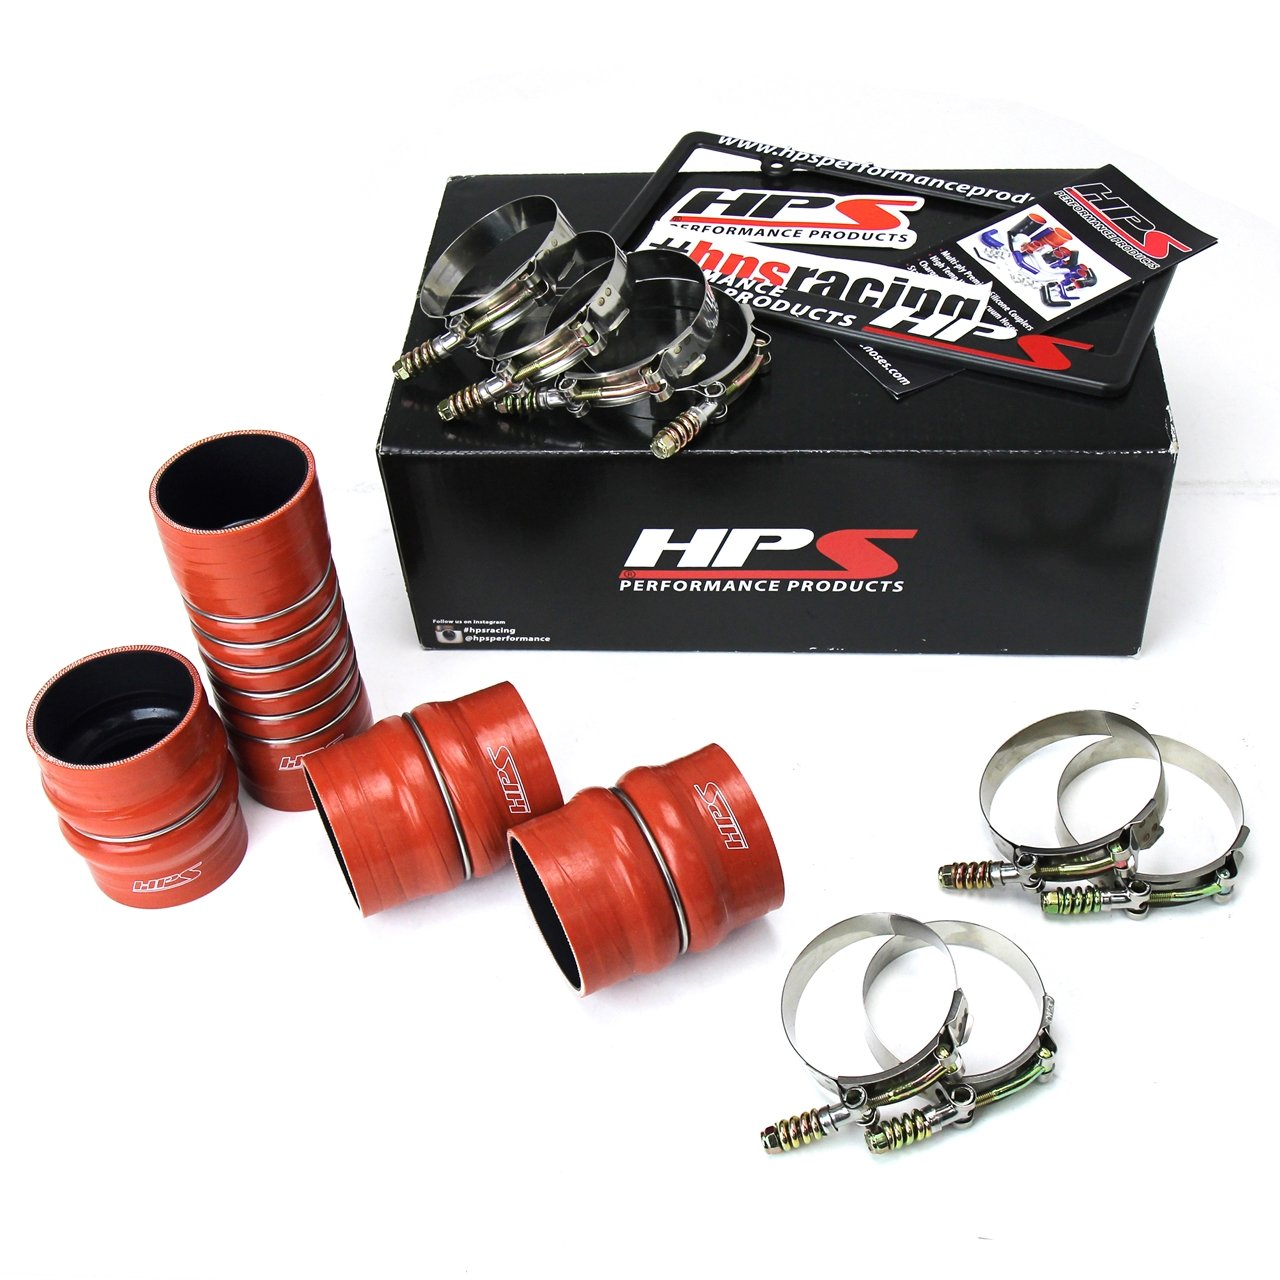 Galaxy Auto Wrinkle Black Intercooler Pipe /& Boot Kit Compatible with 2003-2007 Dodge Ram 5.9 Cummins Diesel